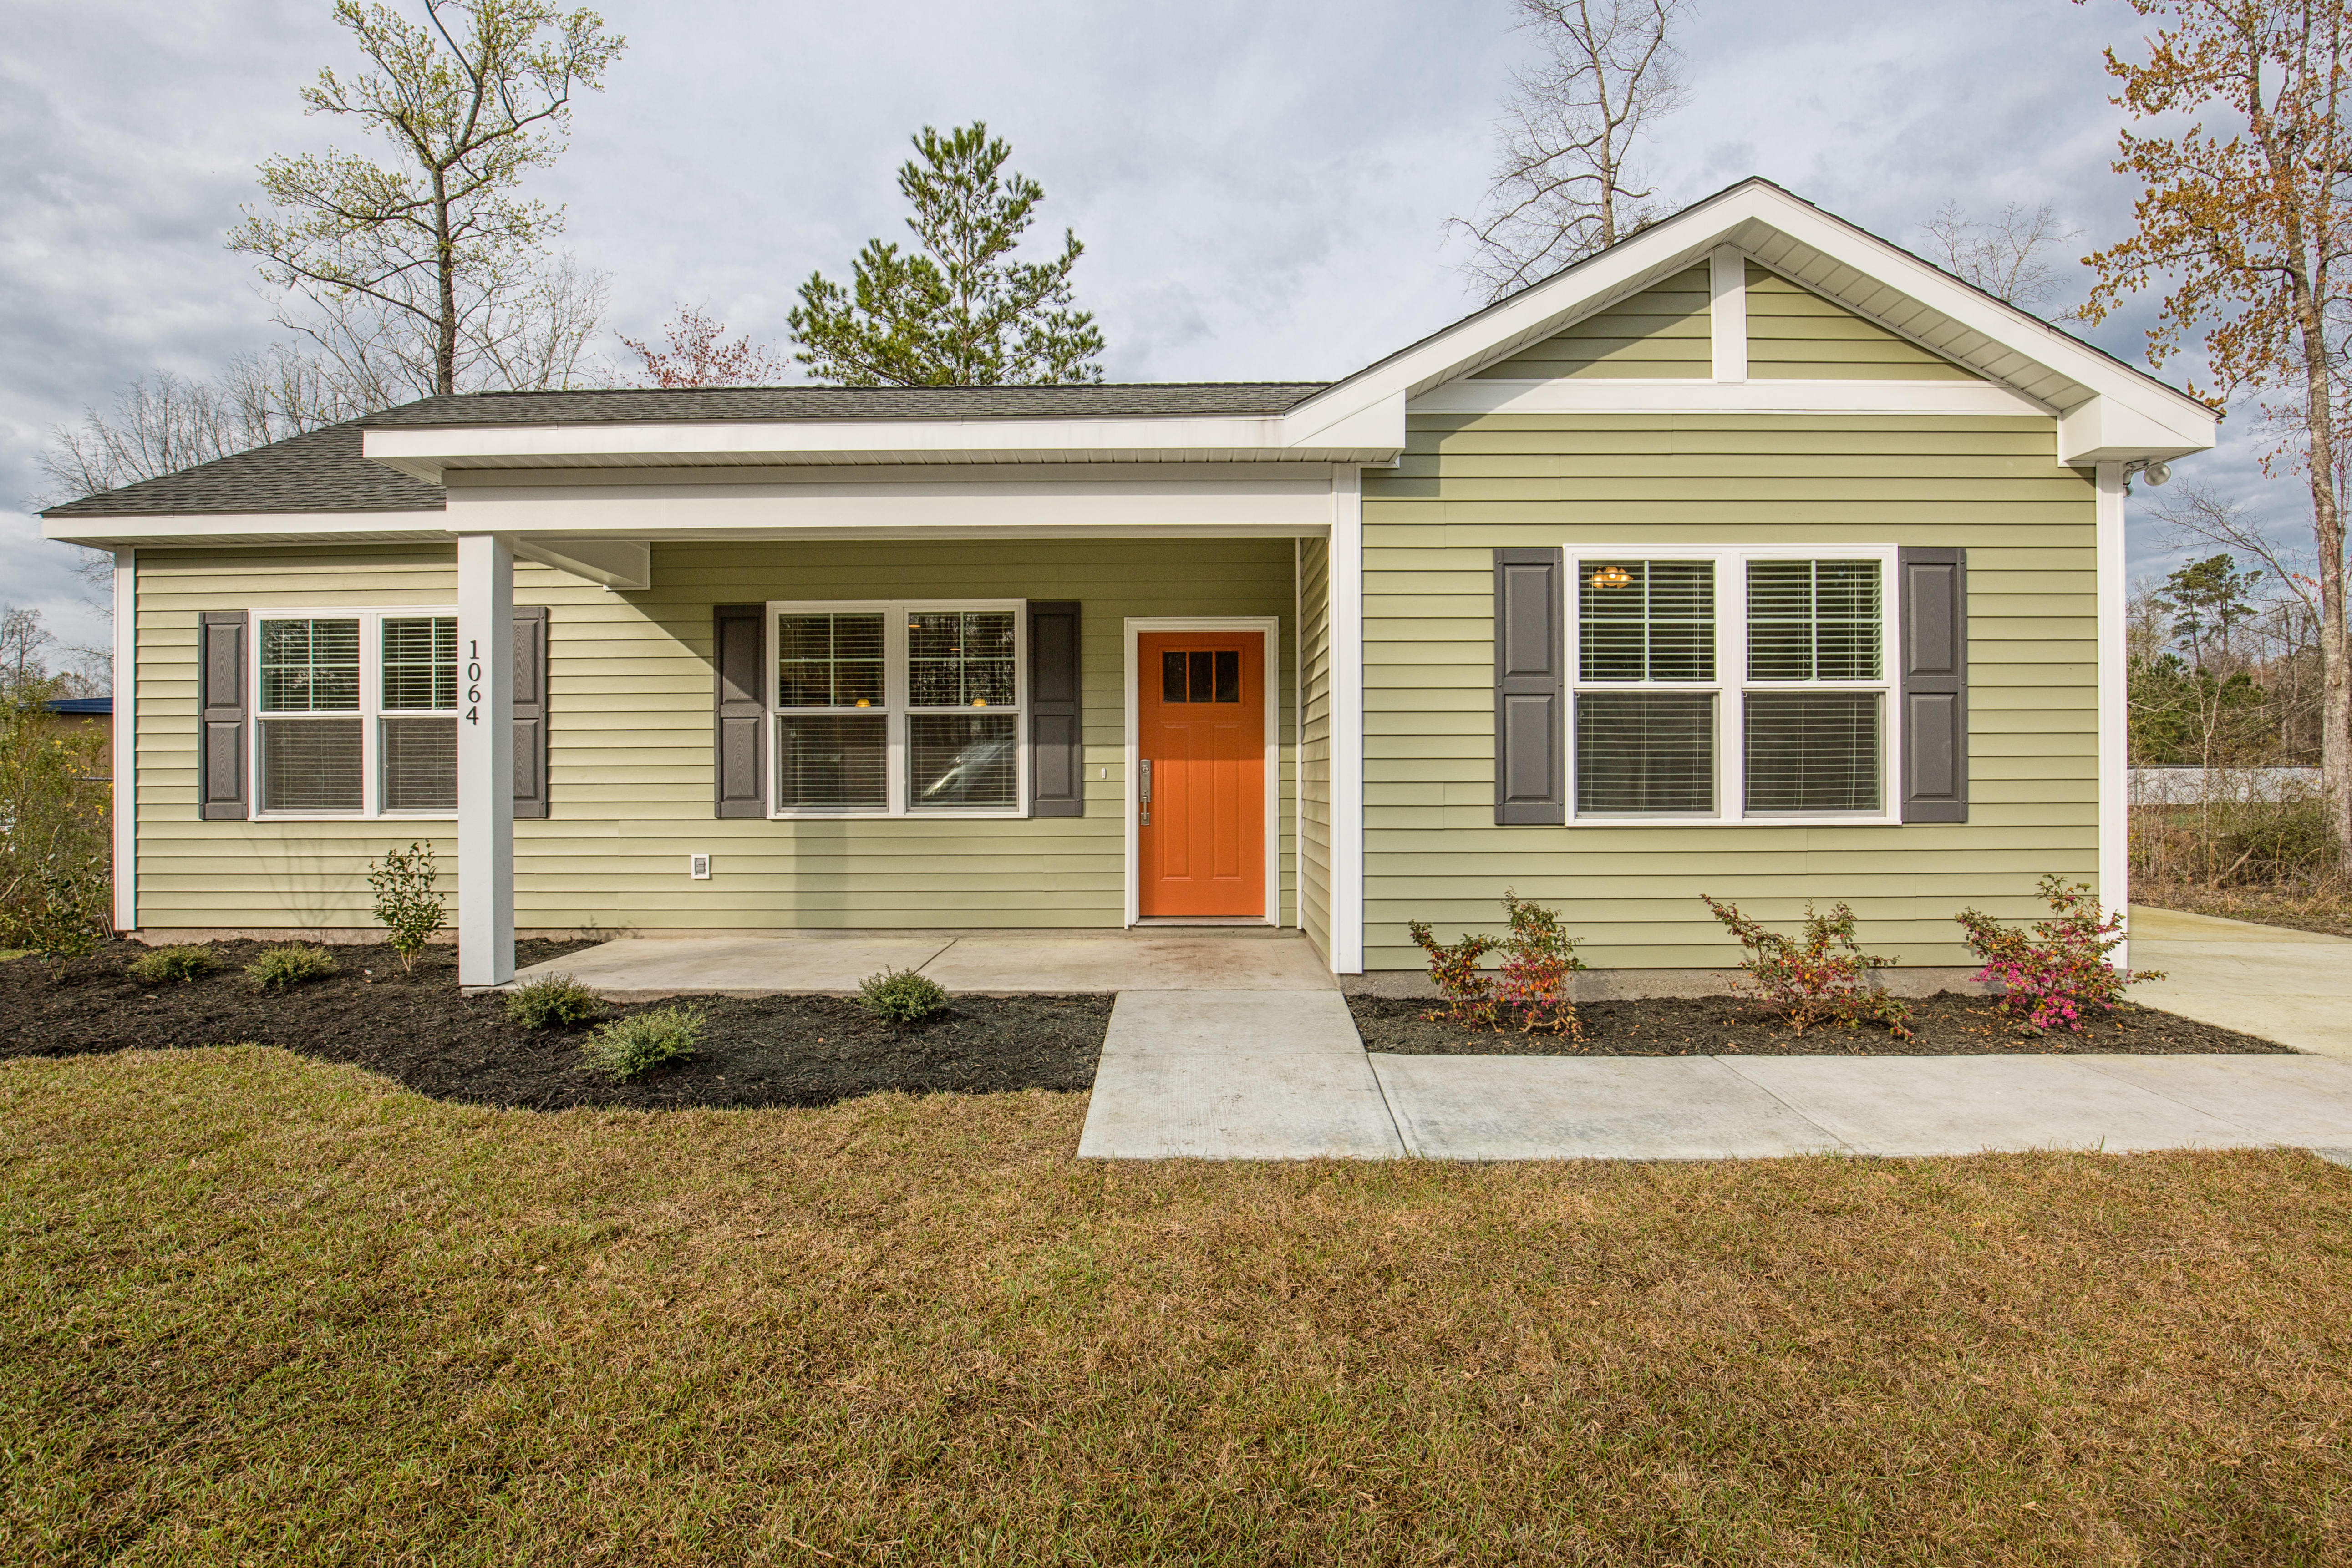 Final Stage: Habitat for Humanity Home Dedication in Myrtle Beach